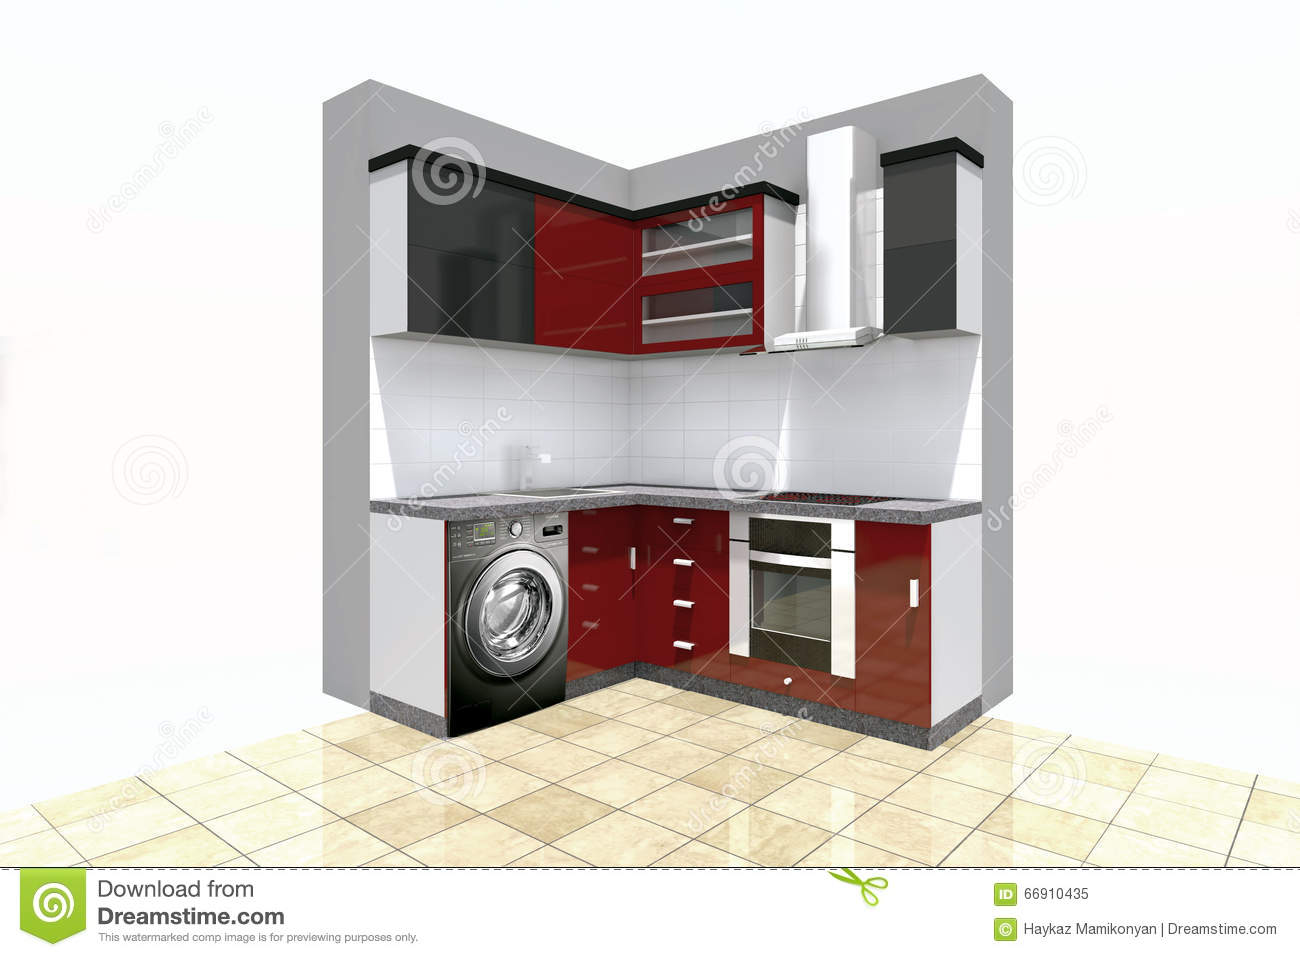 Kitchen design stock illustration image 66910435 - What software do interior designers use ...